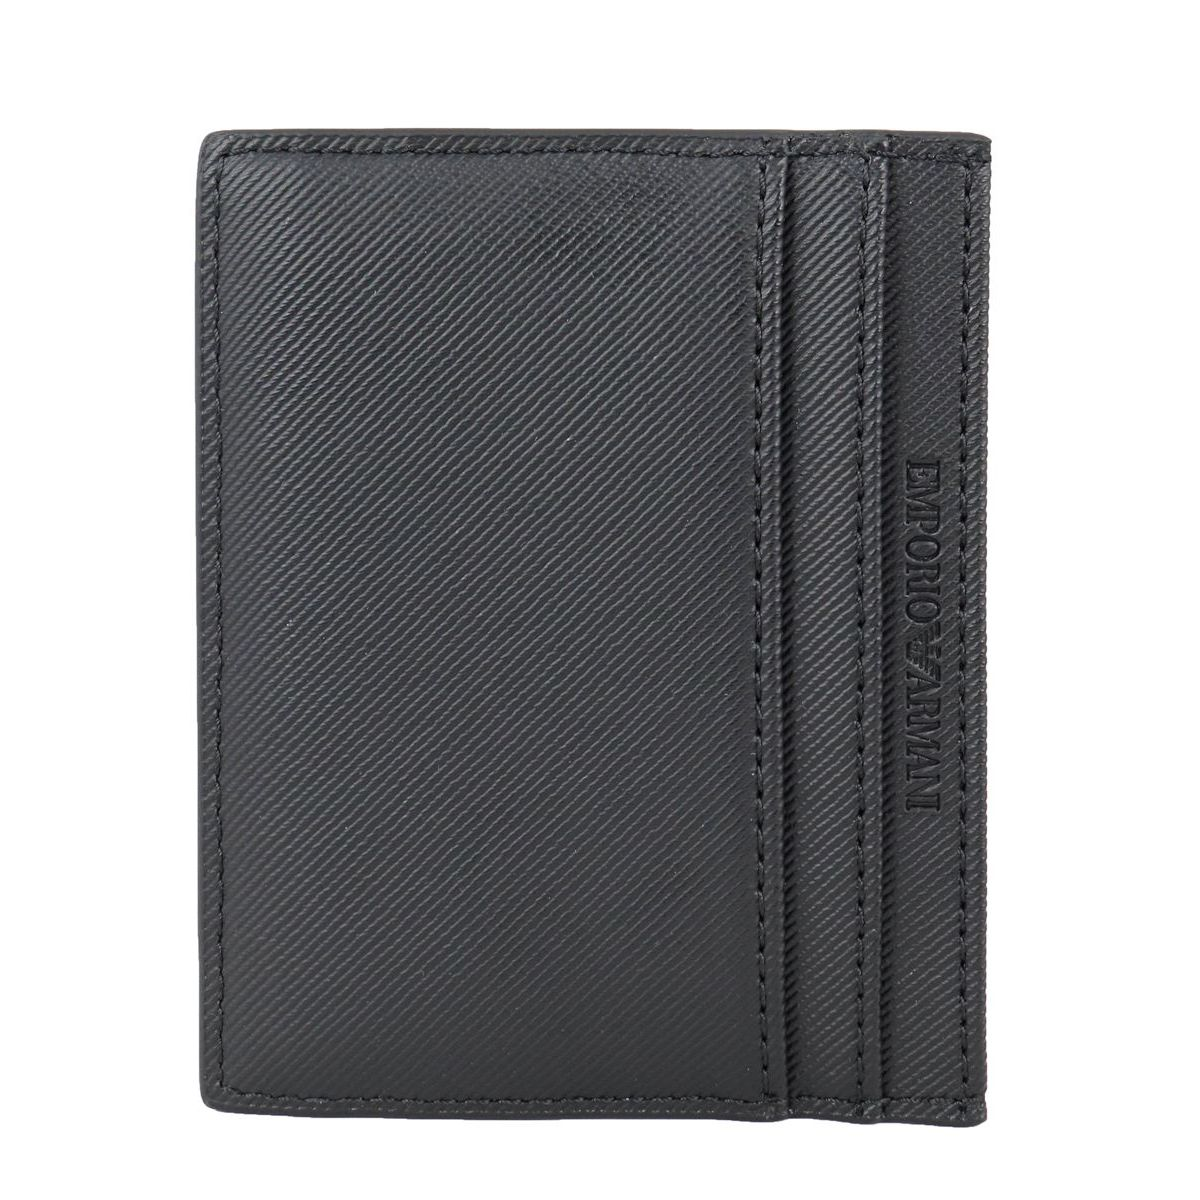 Faux leather card holder with embossed logo Black Emporio Armani